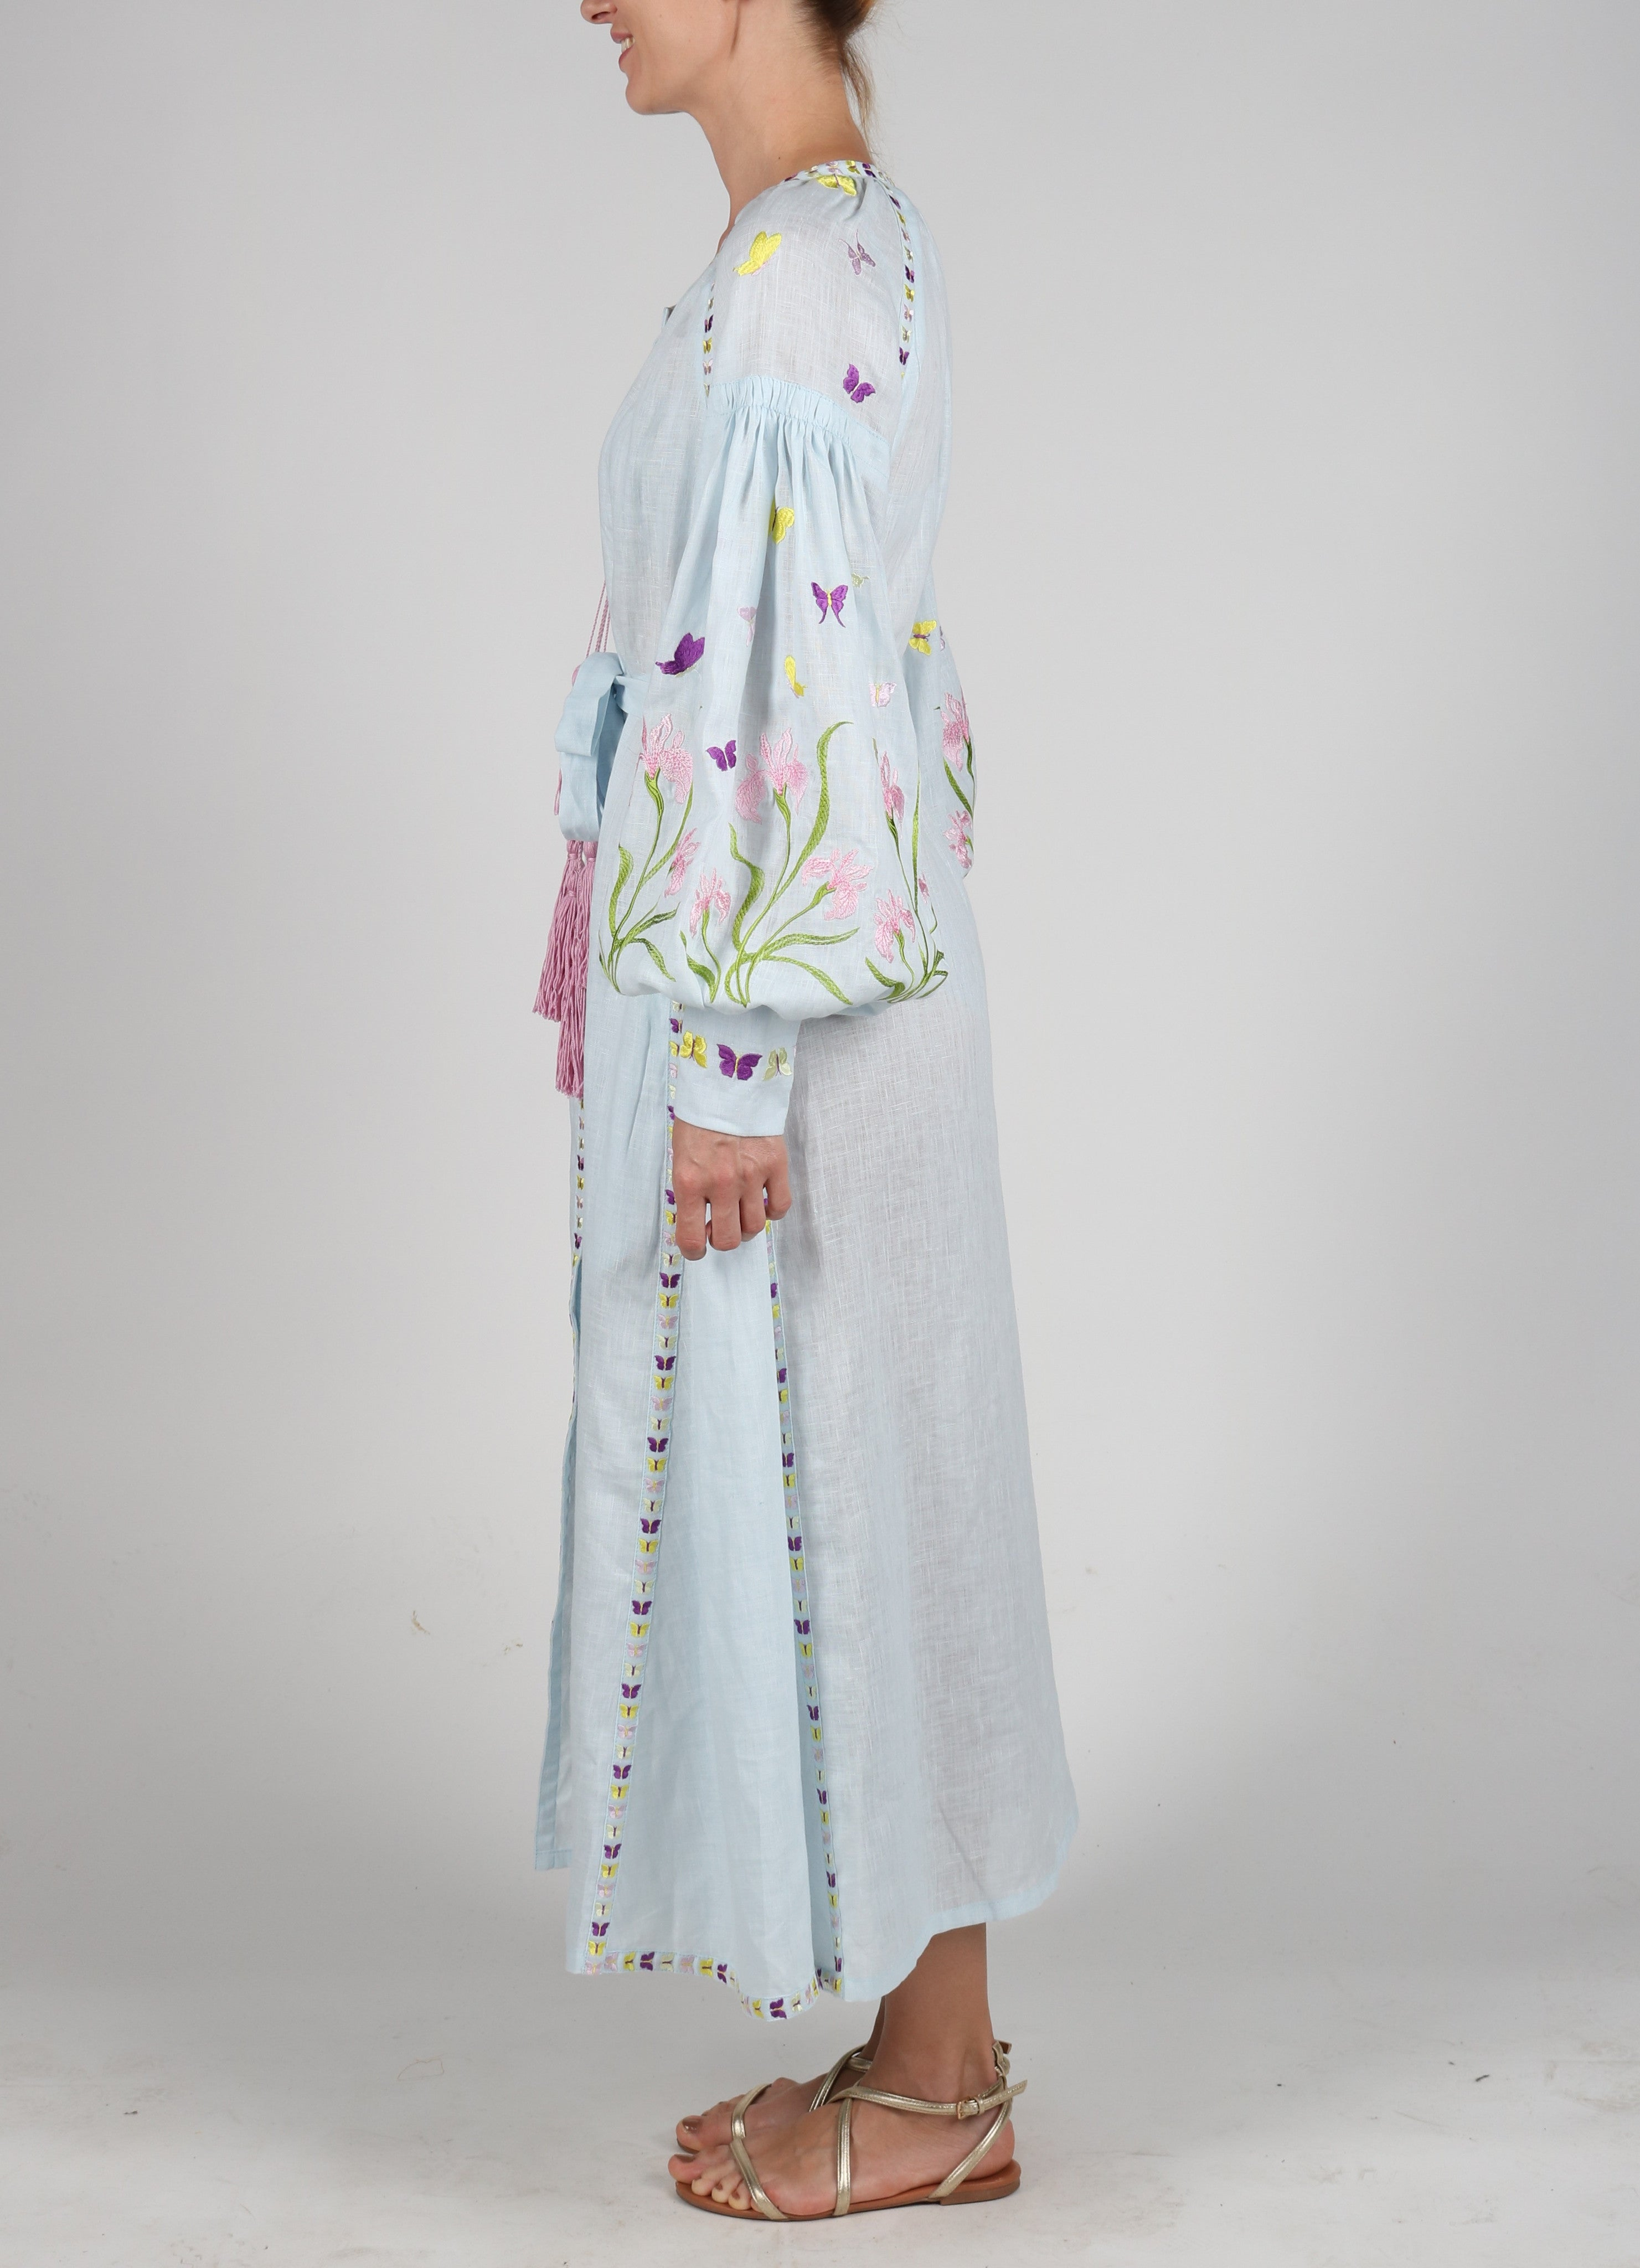 Fanm Mon Light Blue Linen Multi Color Floral Butterfly Embroidery Vyshyvanka MIDI Dress size XS-XXL MD012A4